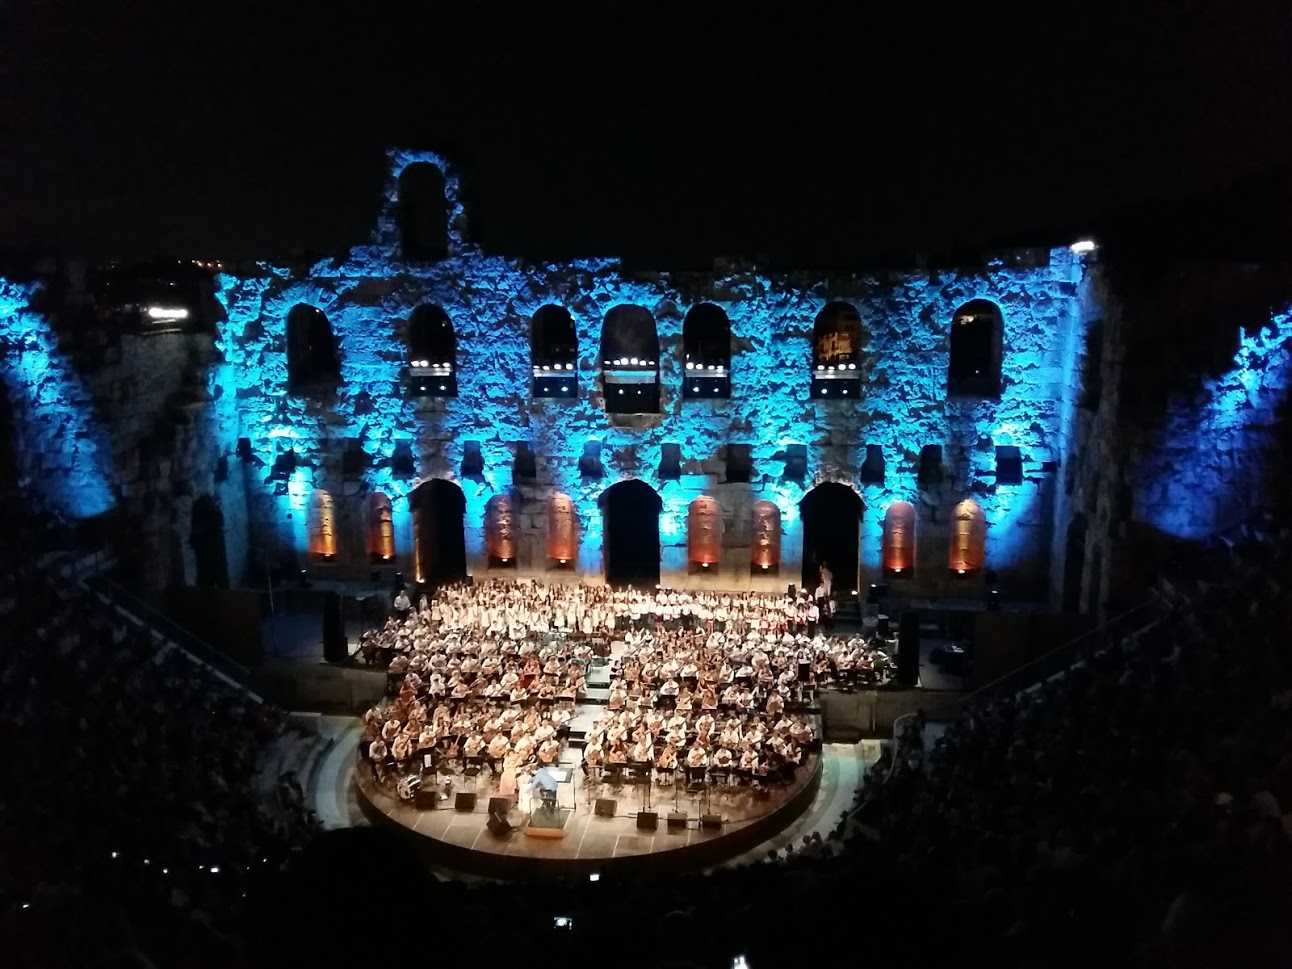 Summer in Greece - Herodion theatre